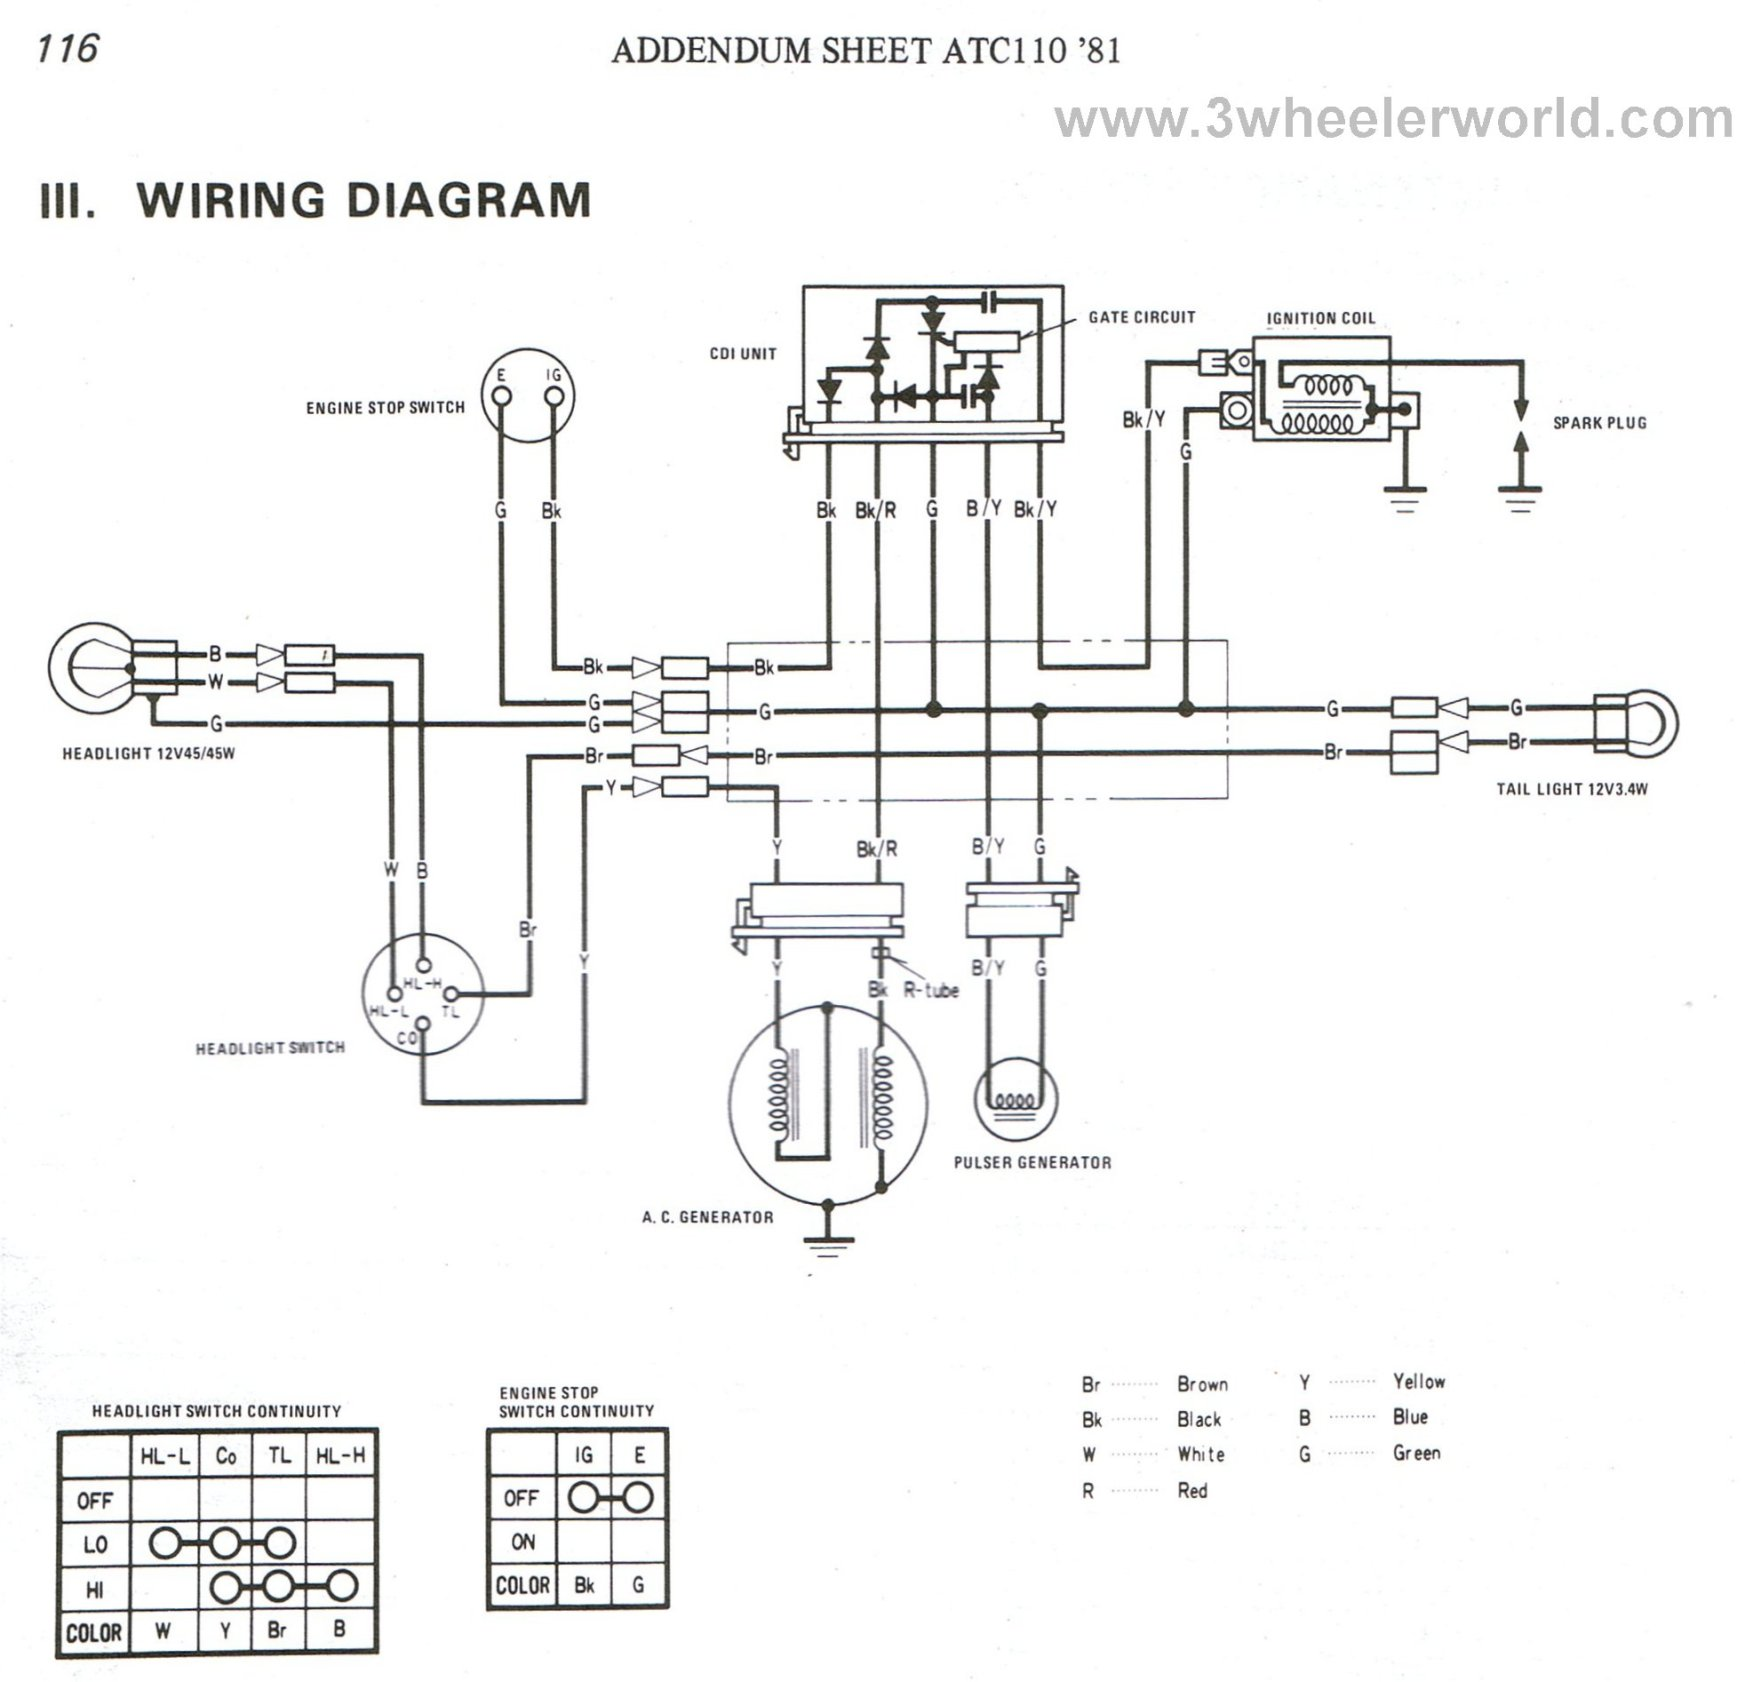 honda quad bike wiring diagram honda image wiring honda atv wiring diagram wiring diagrams on honda quad bike wiring diagram